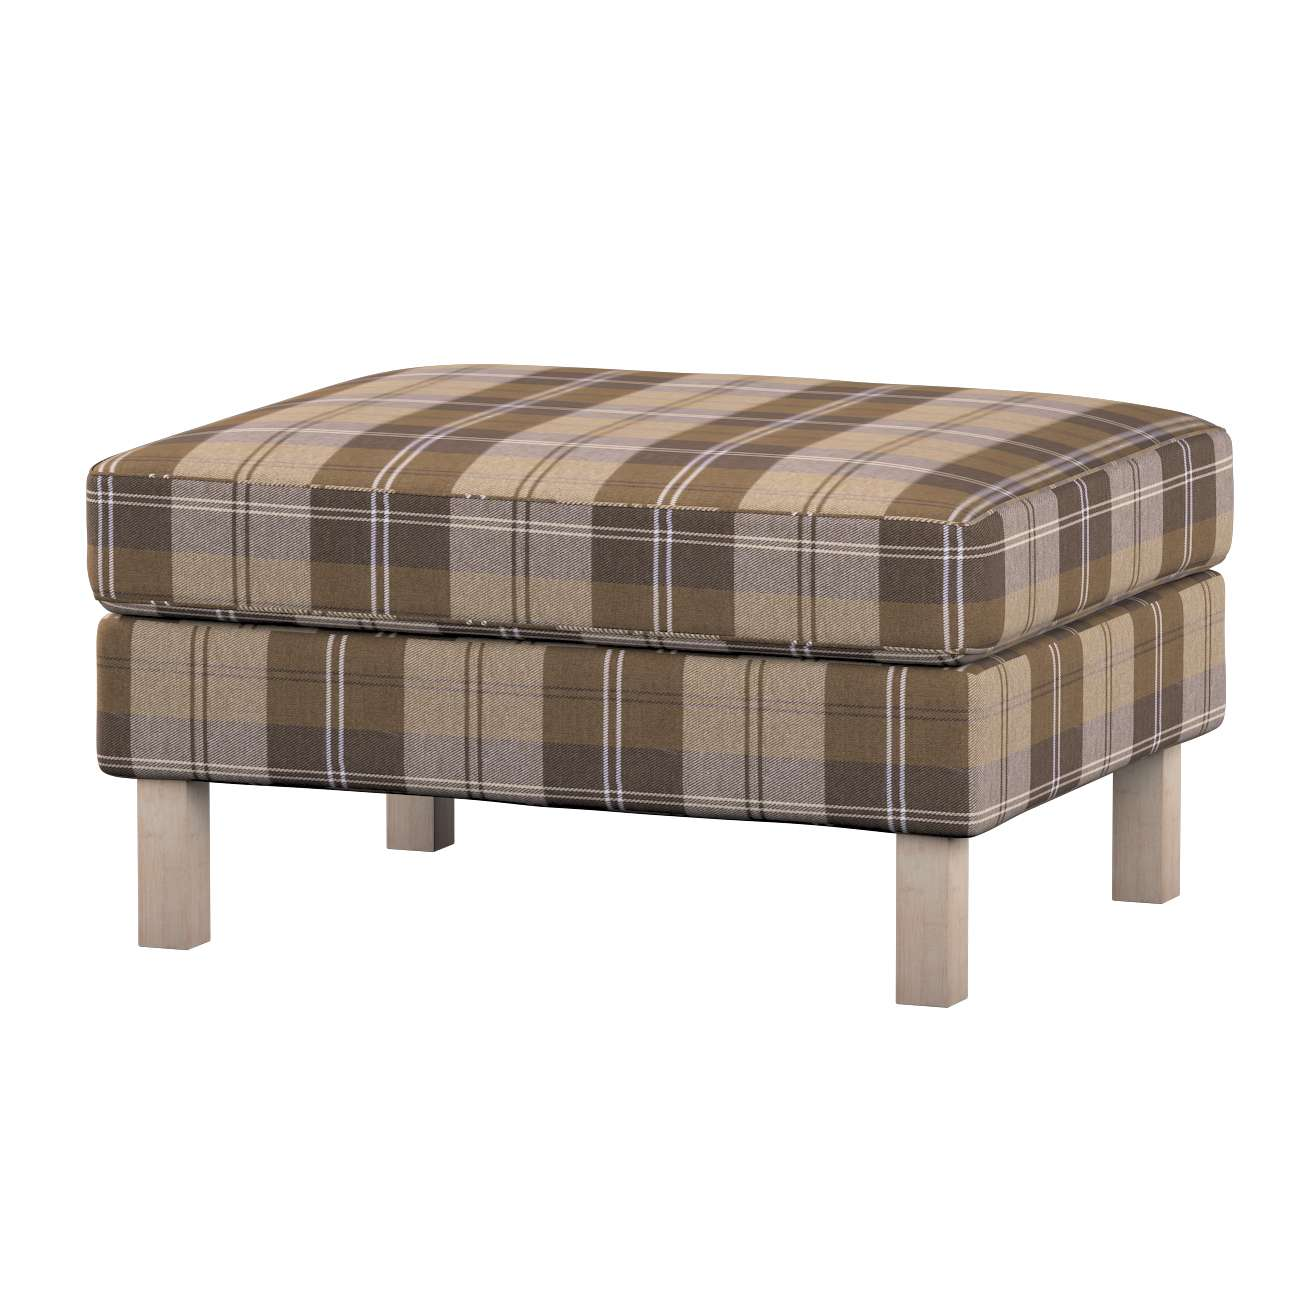 Karlstad footstool cover Karlstad footstool cover in collection Edinburgh, fabric: 115-76